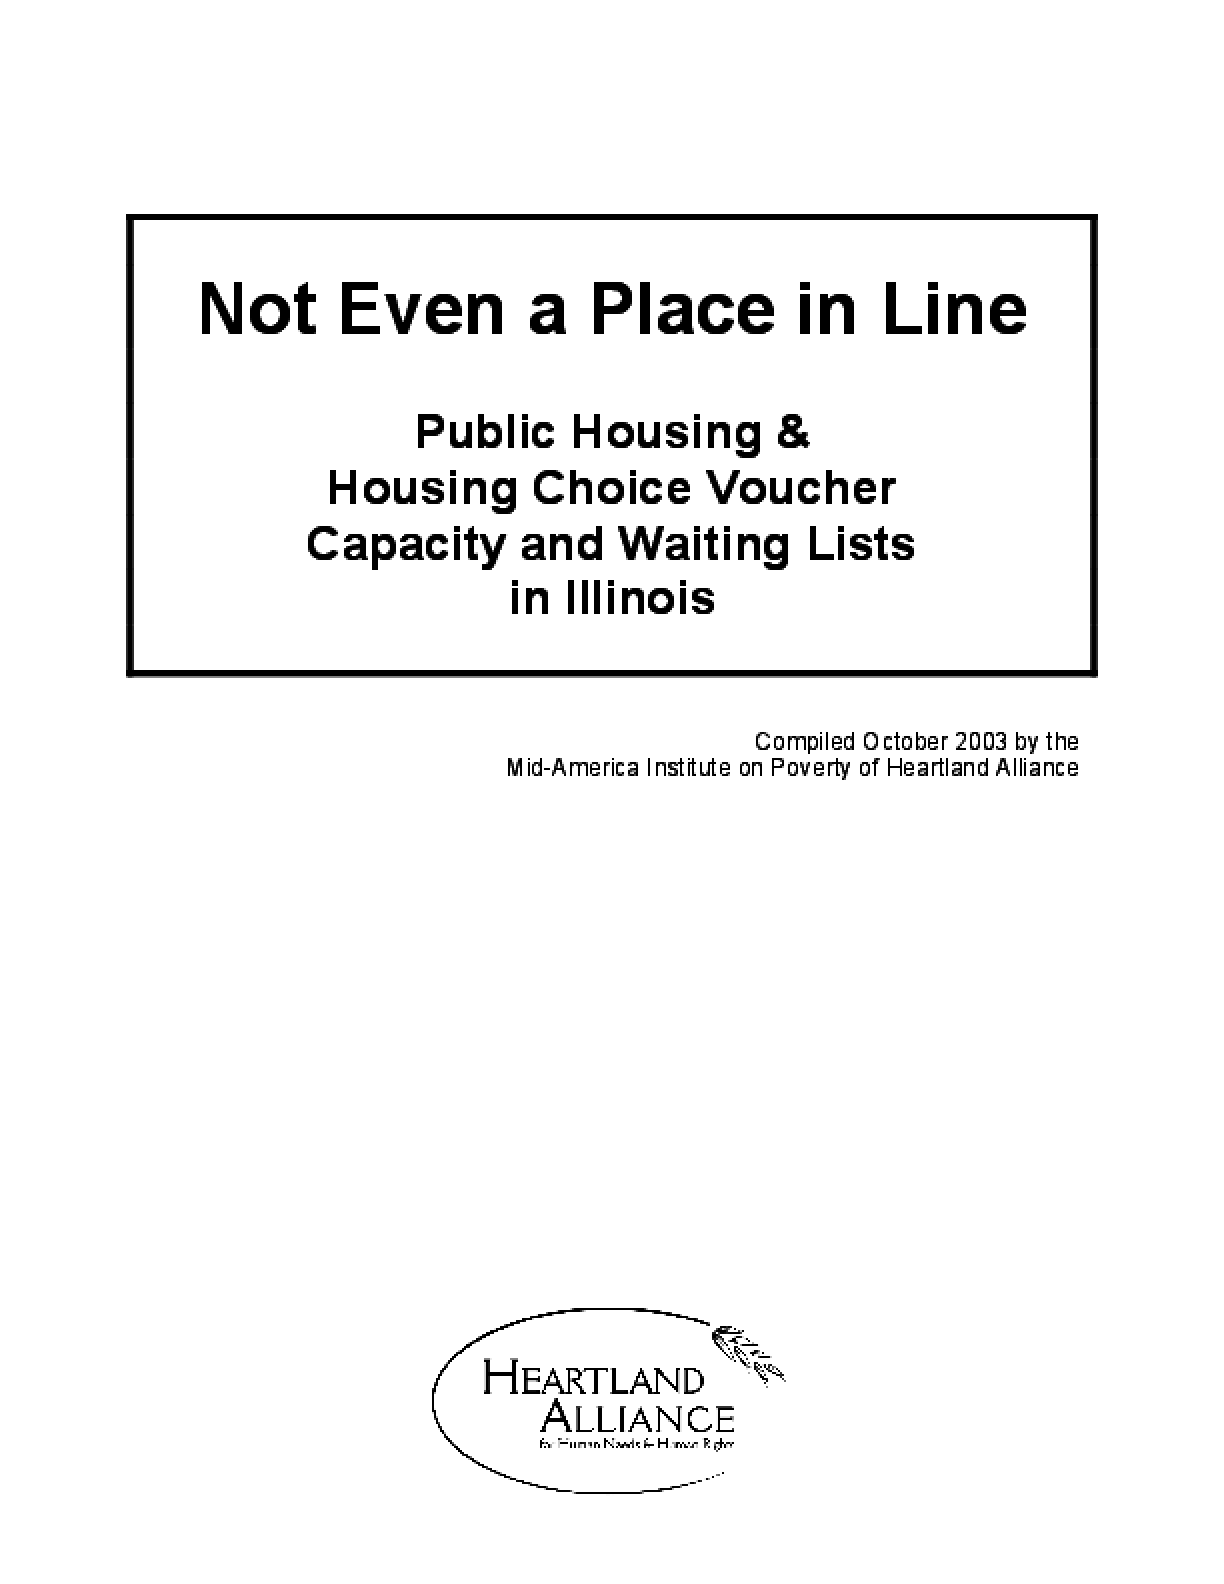 Not Even A Place in Line: Public Housing & Housing Choice Voucher Capacity and Waiting Lists in Illinois